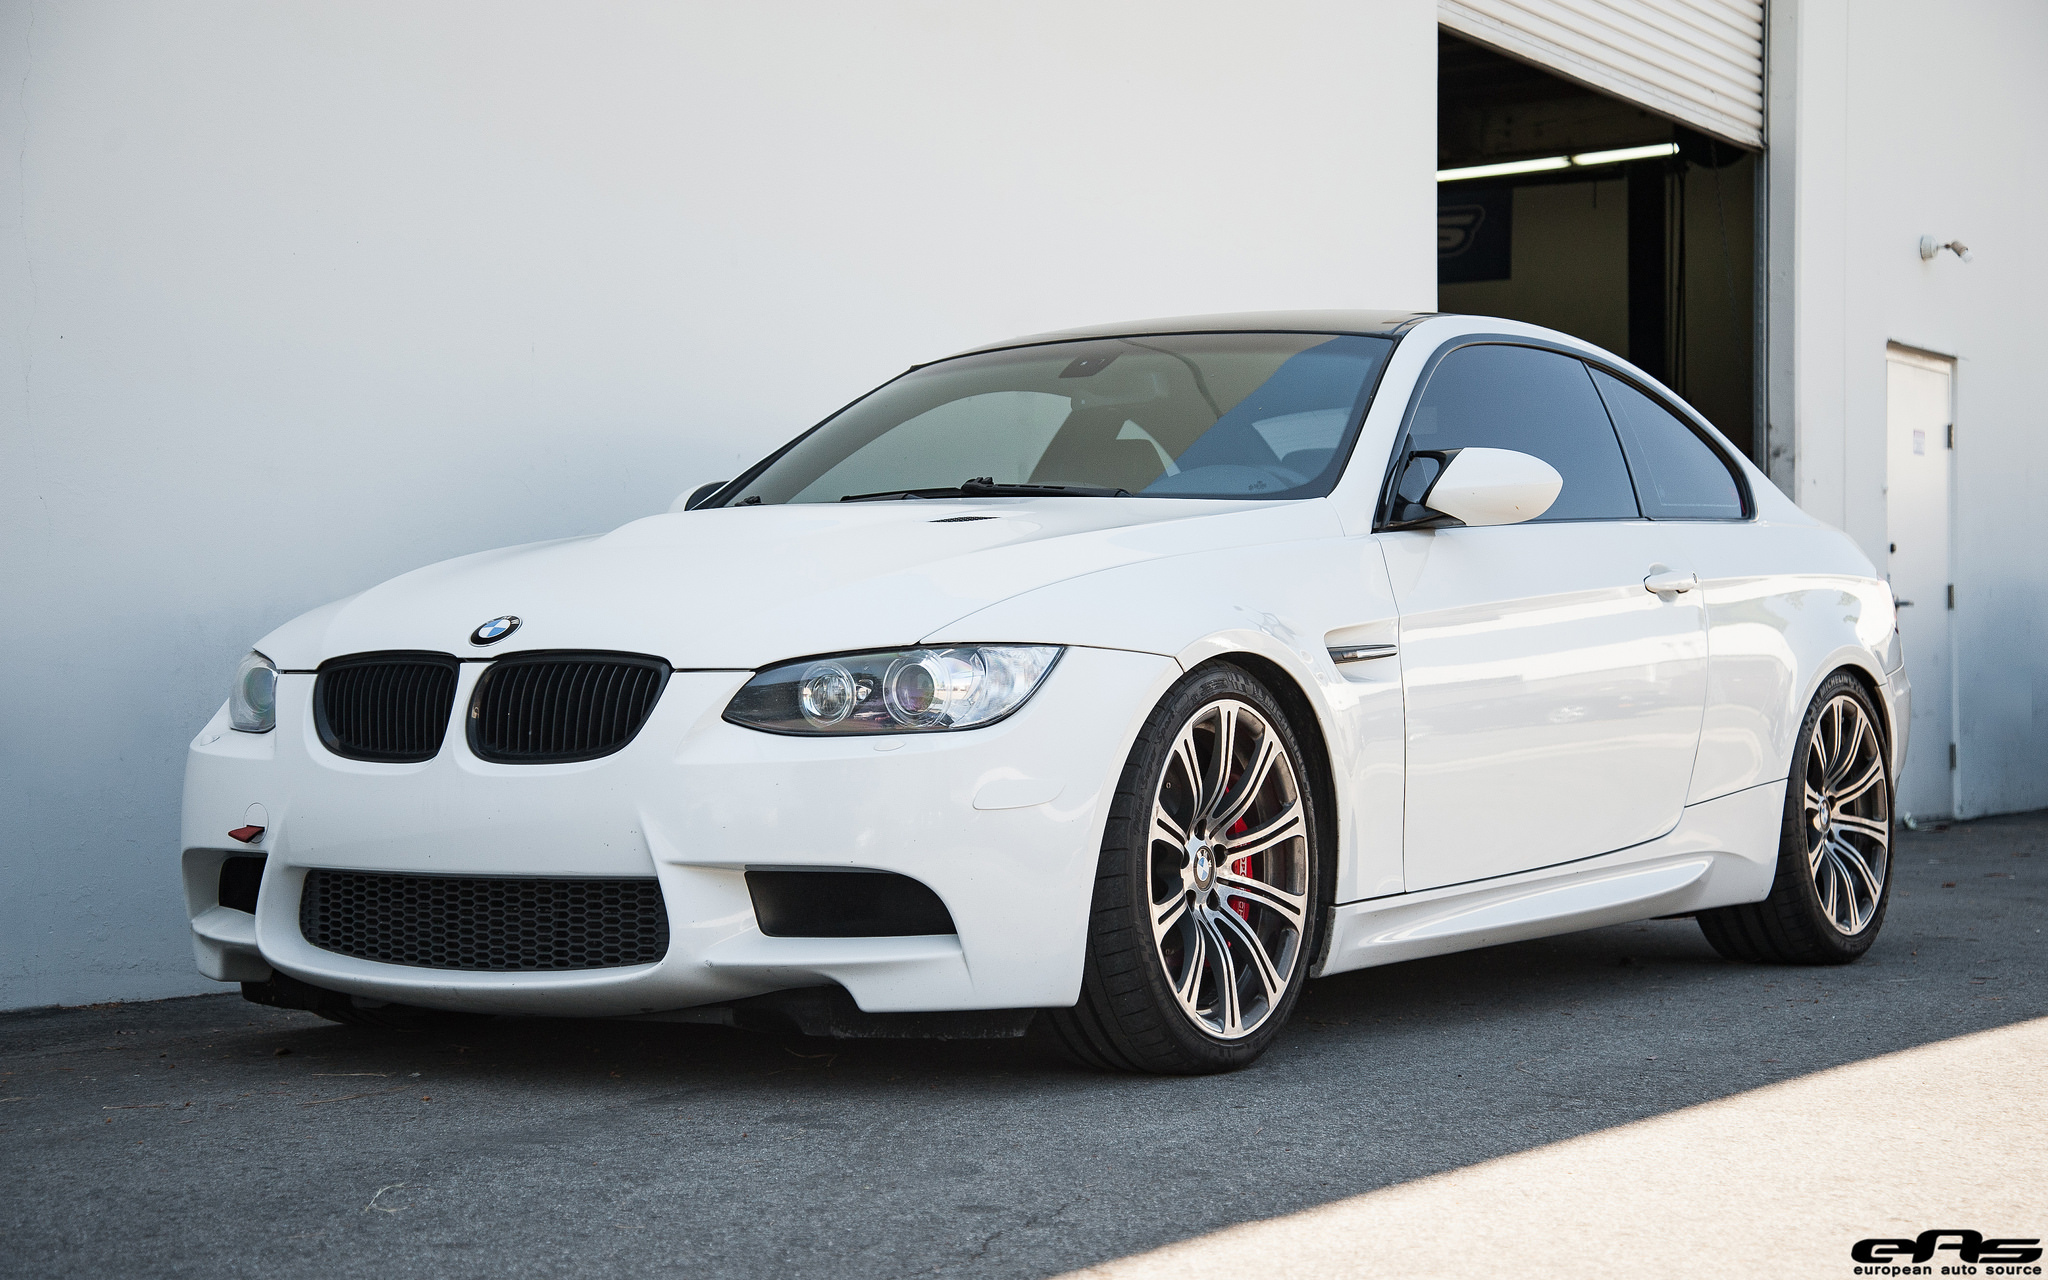 alpine white bmw e92 m3 gets modded at european auto source. Black Bedroom Furniture Sets. Home Design Ideas